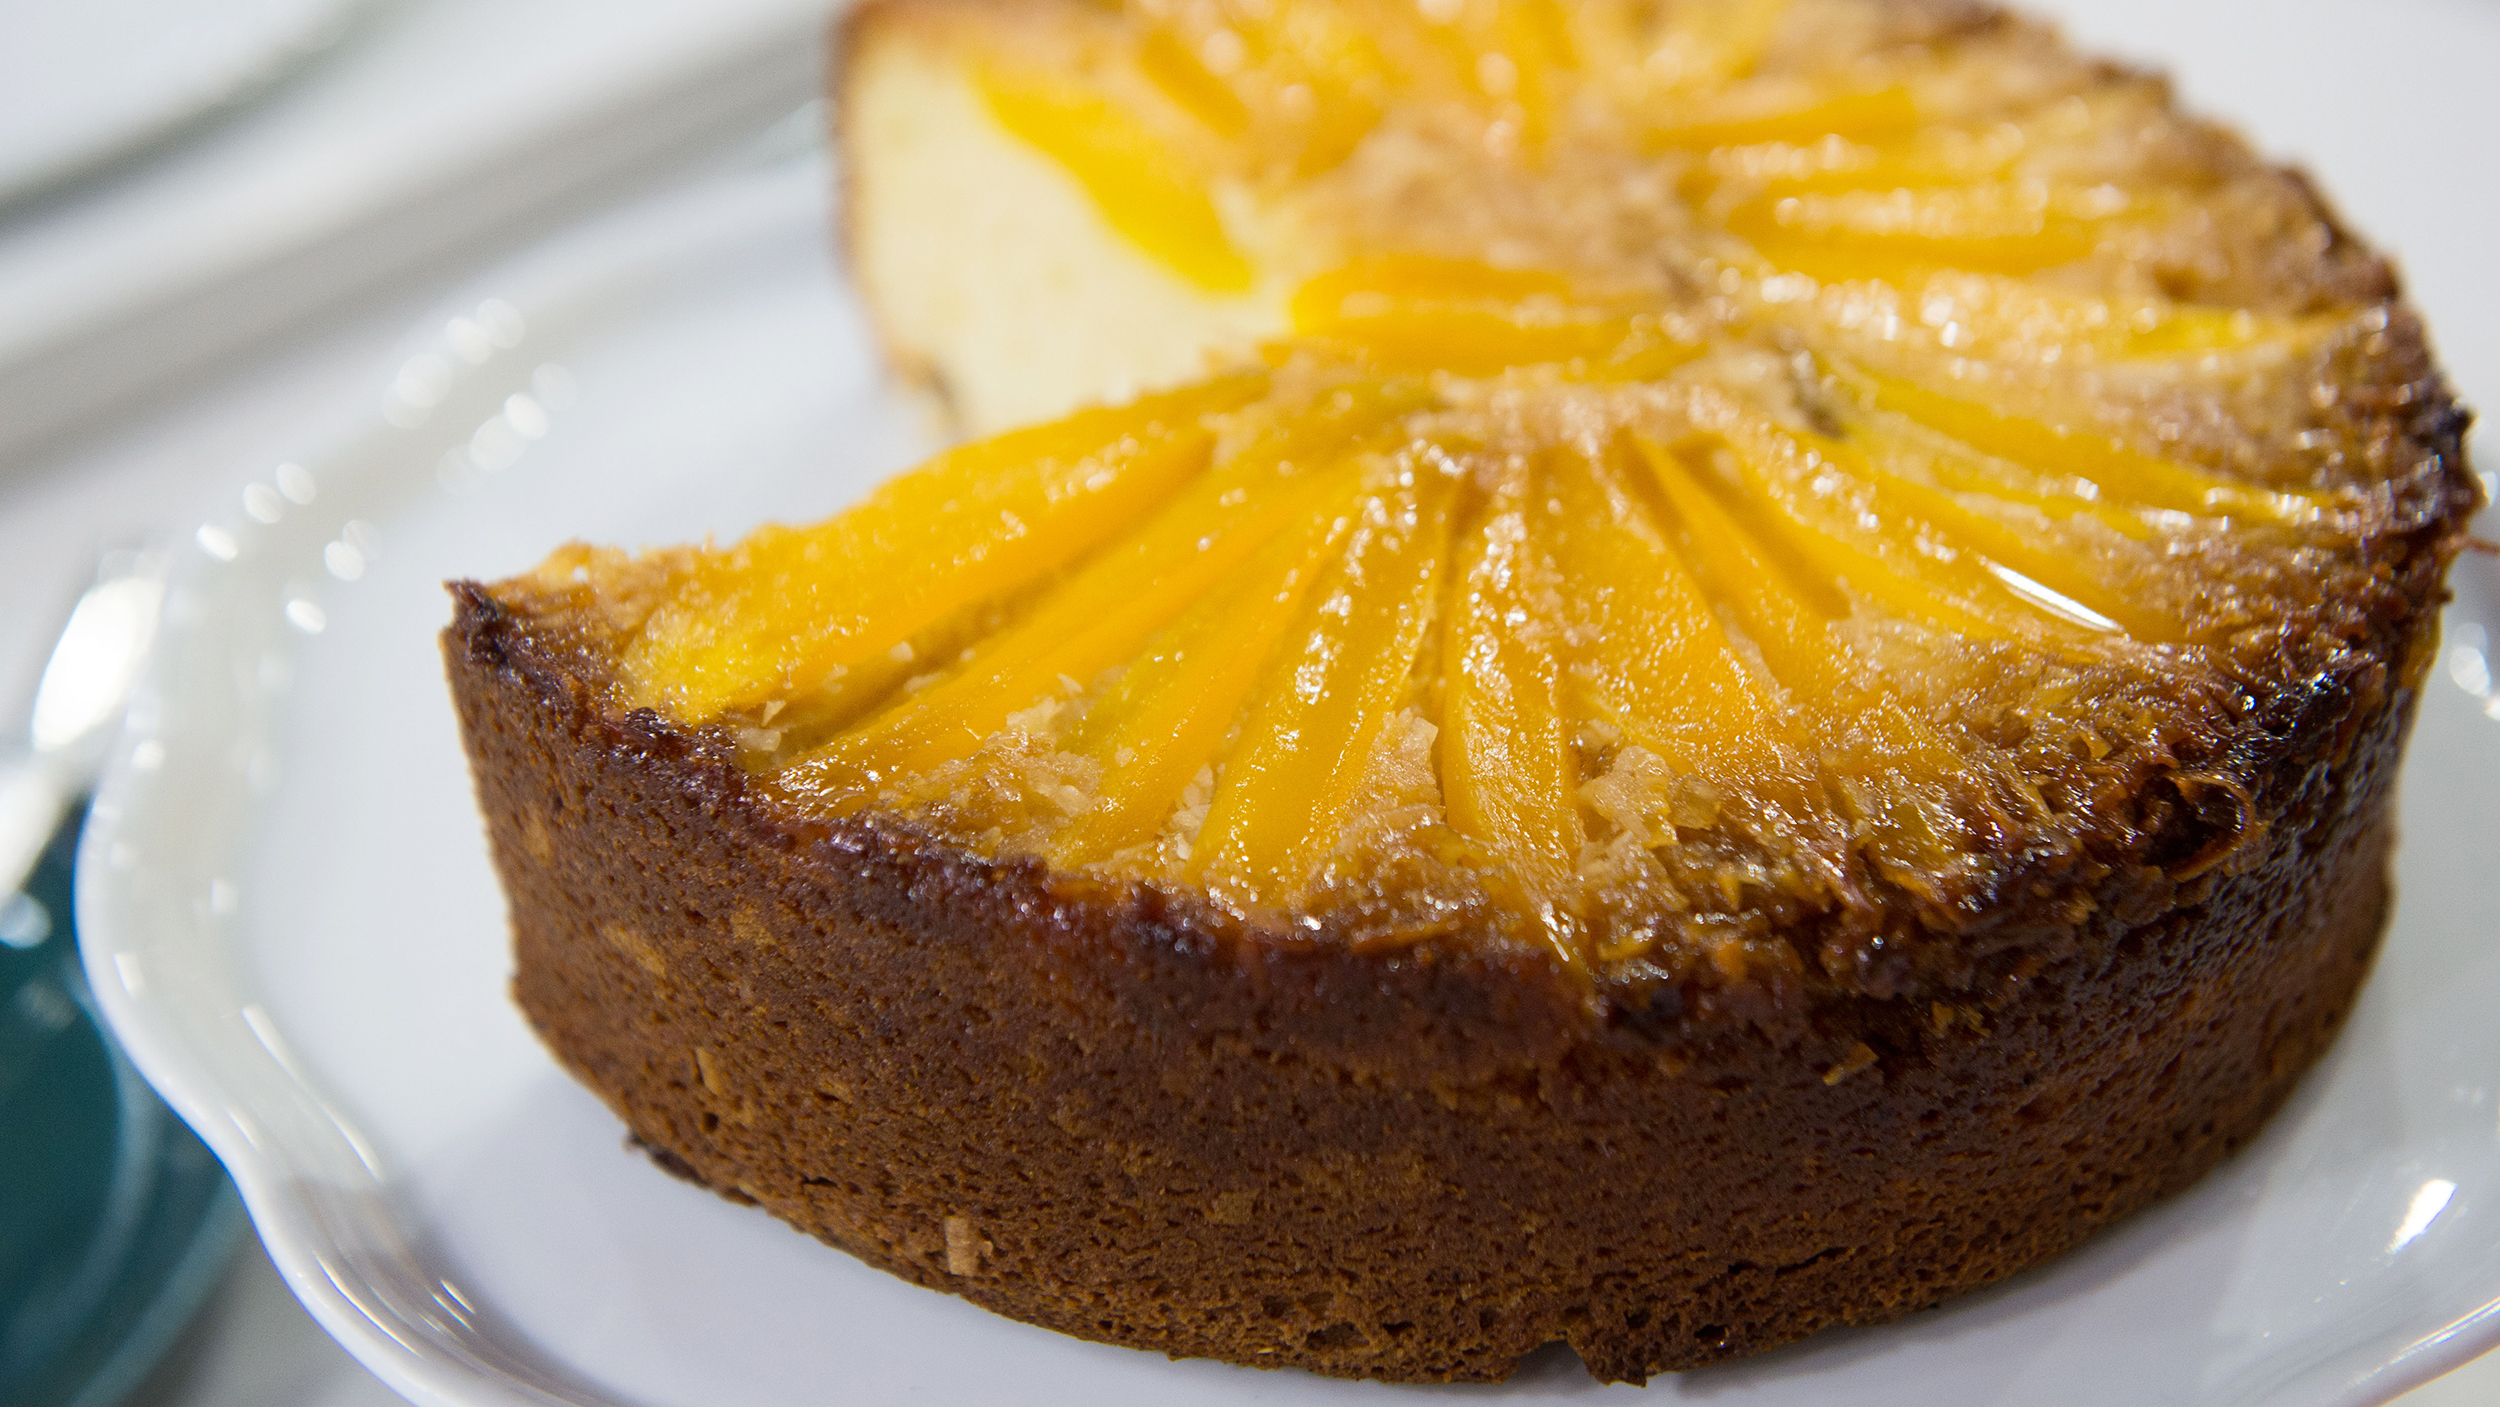 Images For Mango Cake : Mango Upside-Down Cake - TODAY.com